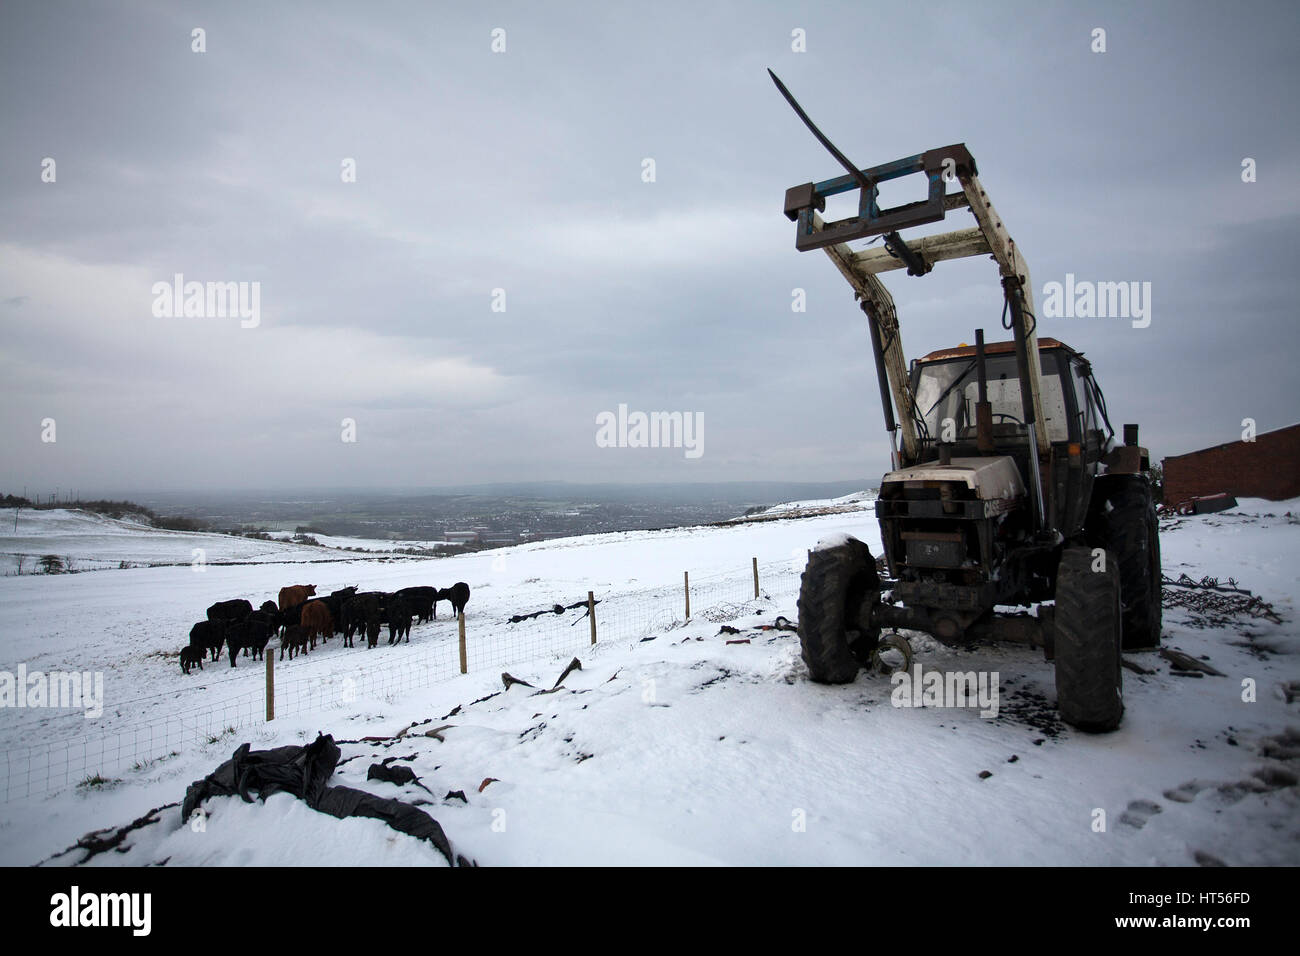 04/04/2012. Oldham / UK. Cattle huddle together for warmth in the hills around Shaw near Oldham   . - Stock Image